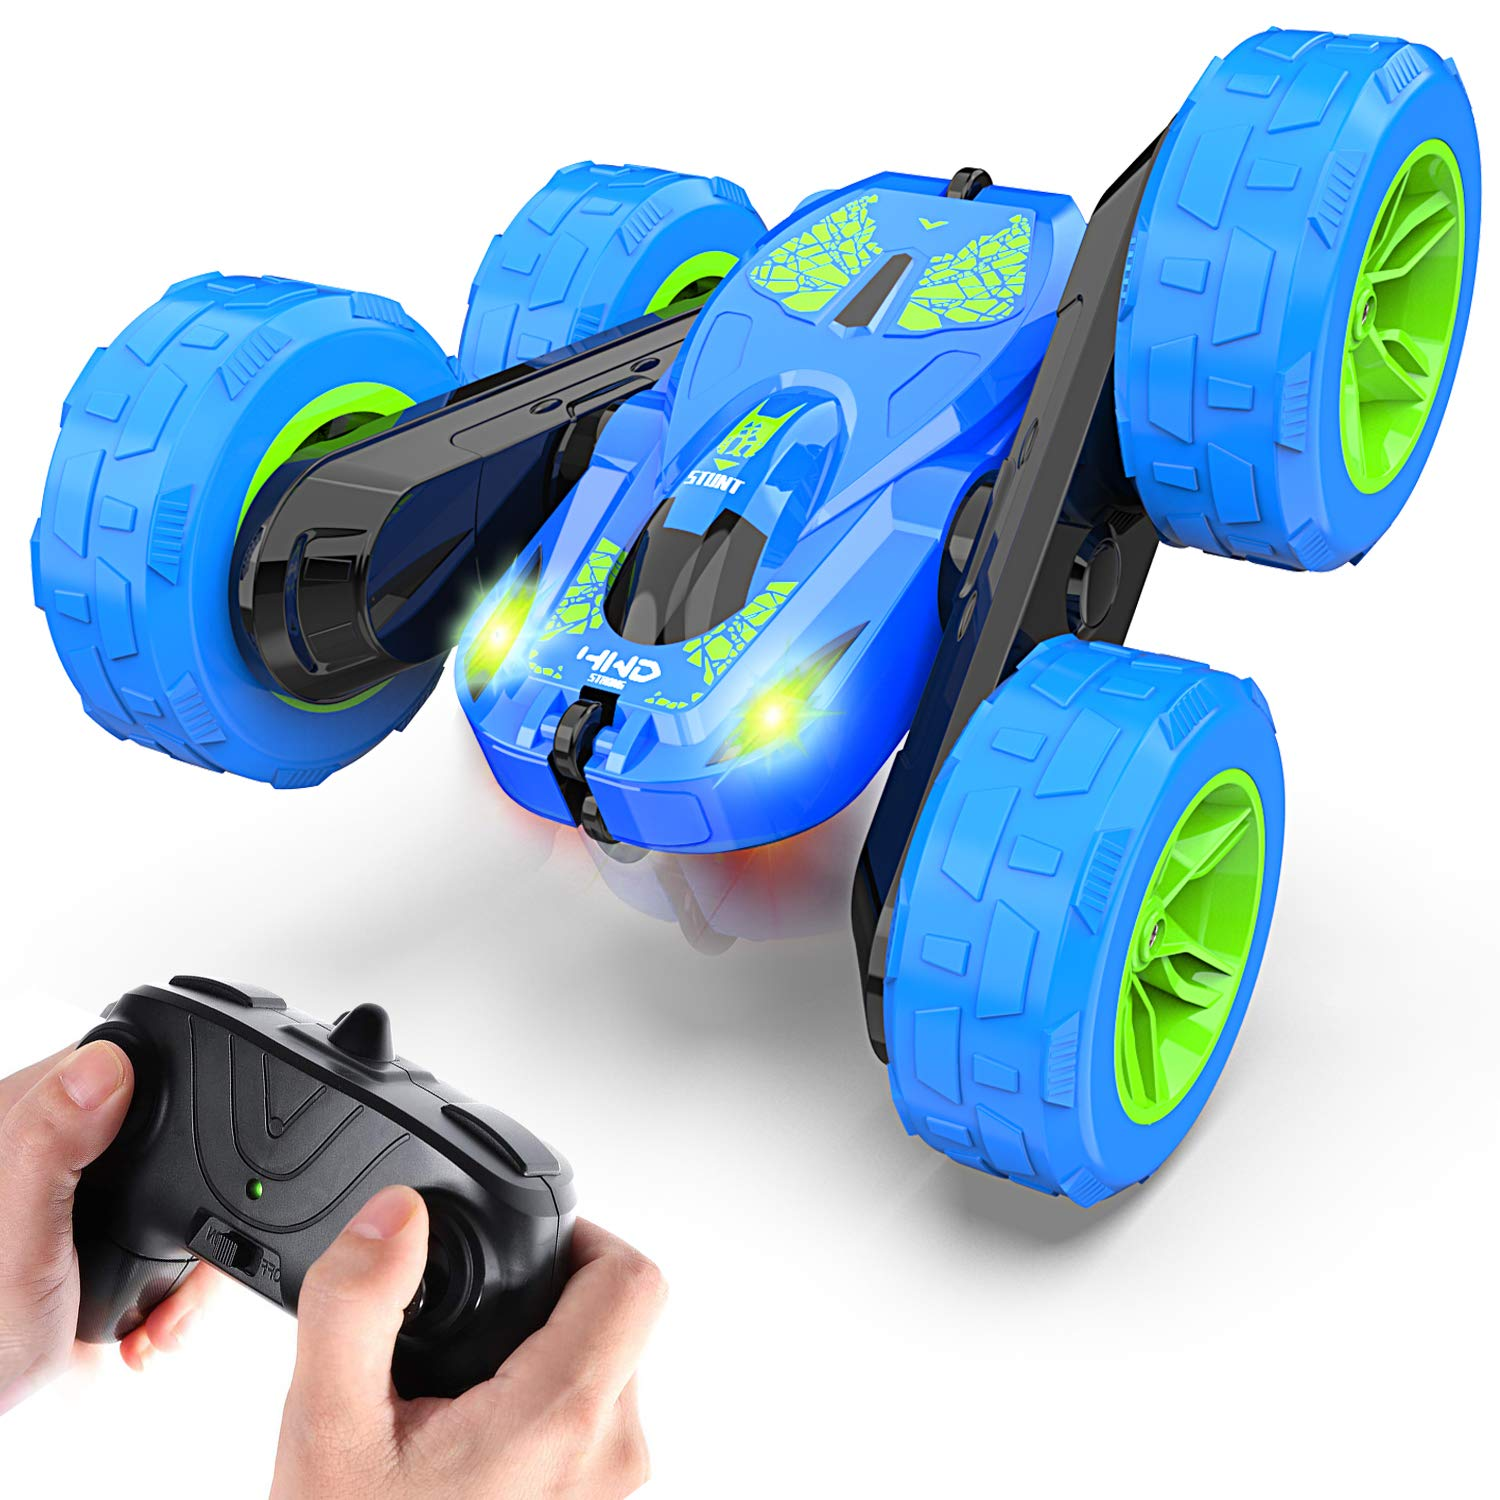 Remote Control Car for Boys RC Stunt Cars, Jepwe Upgraded 4WD 2.4GHz High Speed Race Car with Headlights - Double Sided Rotating Tumbling 360 Degree Flips RC Cars for 4-12 Years Old Kids Boys